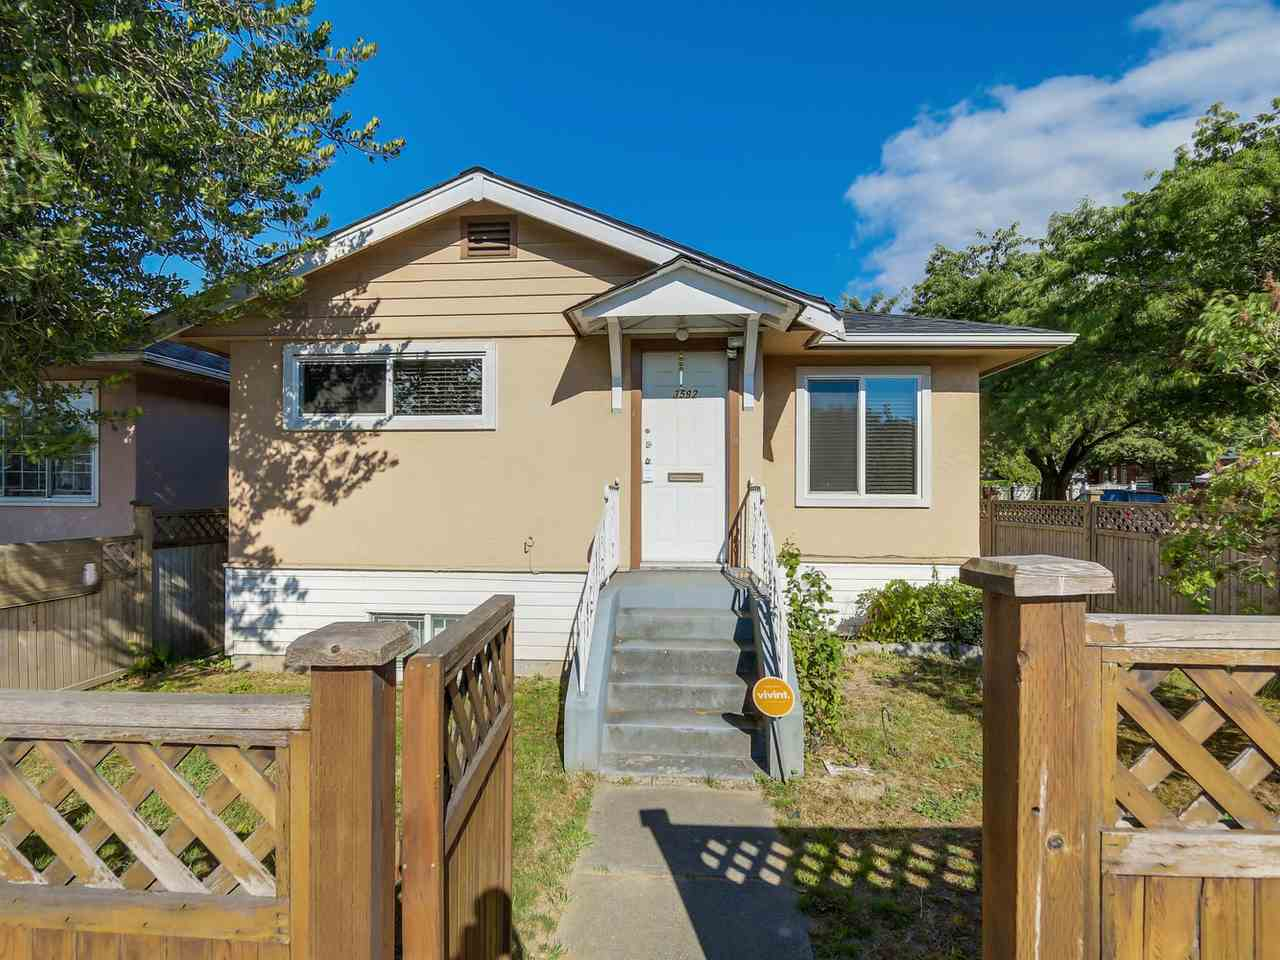 Main Photo: 3592 KNIGHT Street in Vancouver: Knight House for sale (Vancouver East)  : MLS® # R2119614